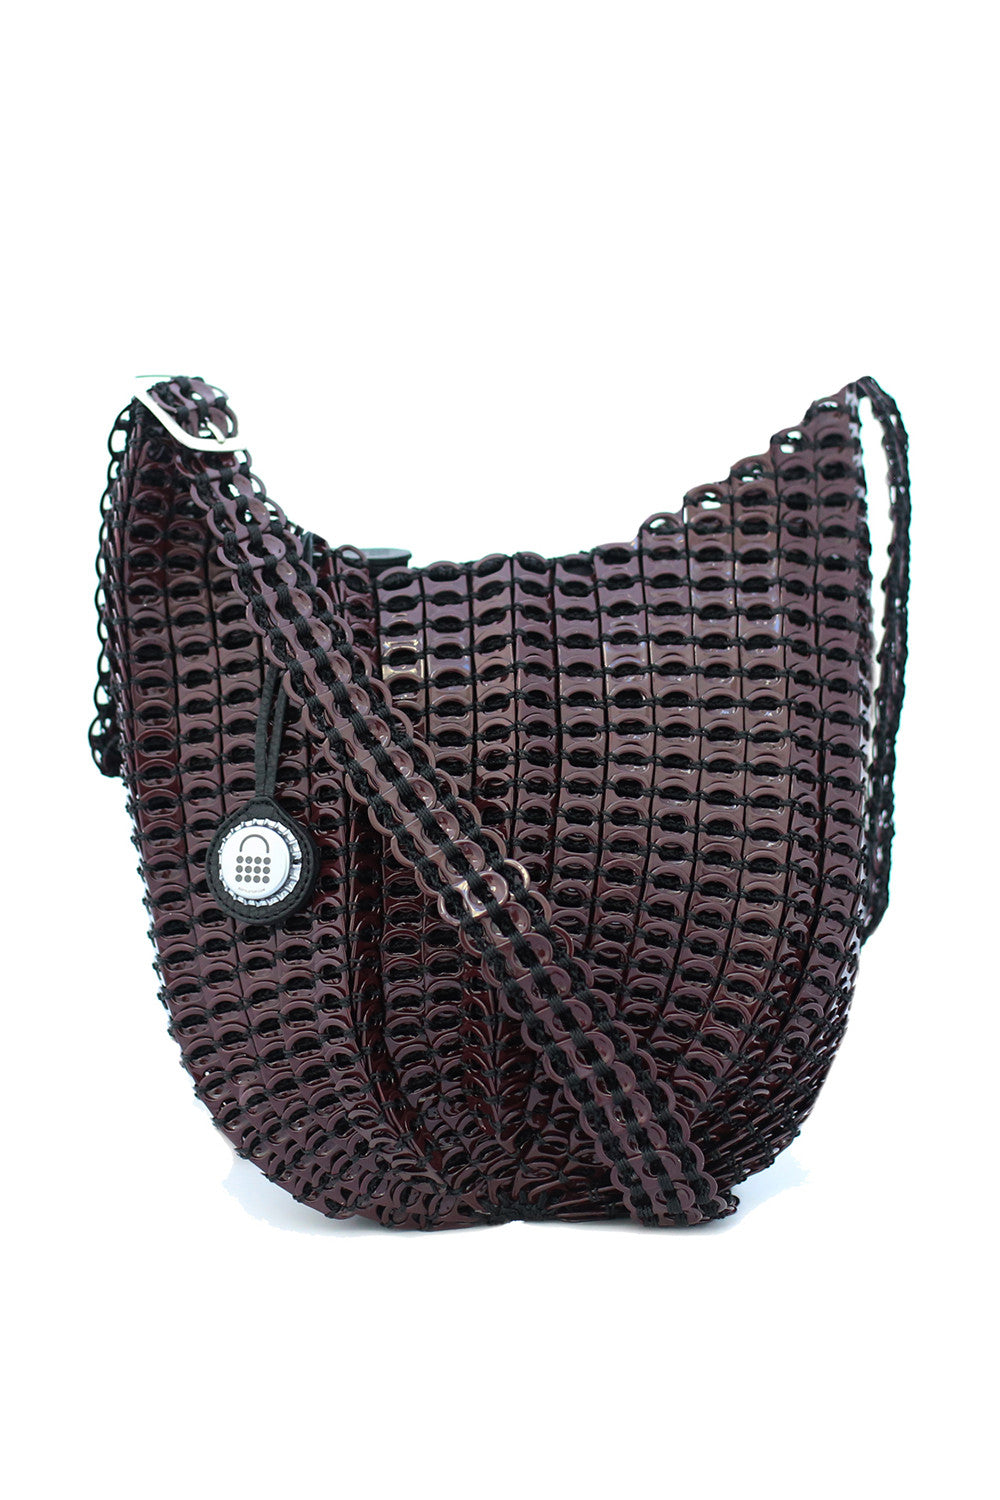 Bellani Cross Body Bag in Bordeaux